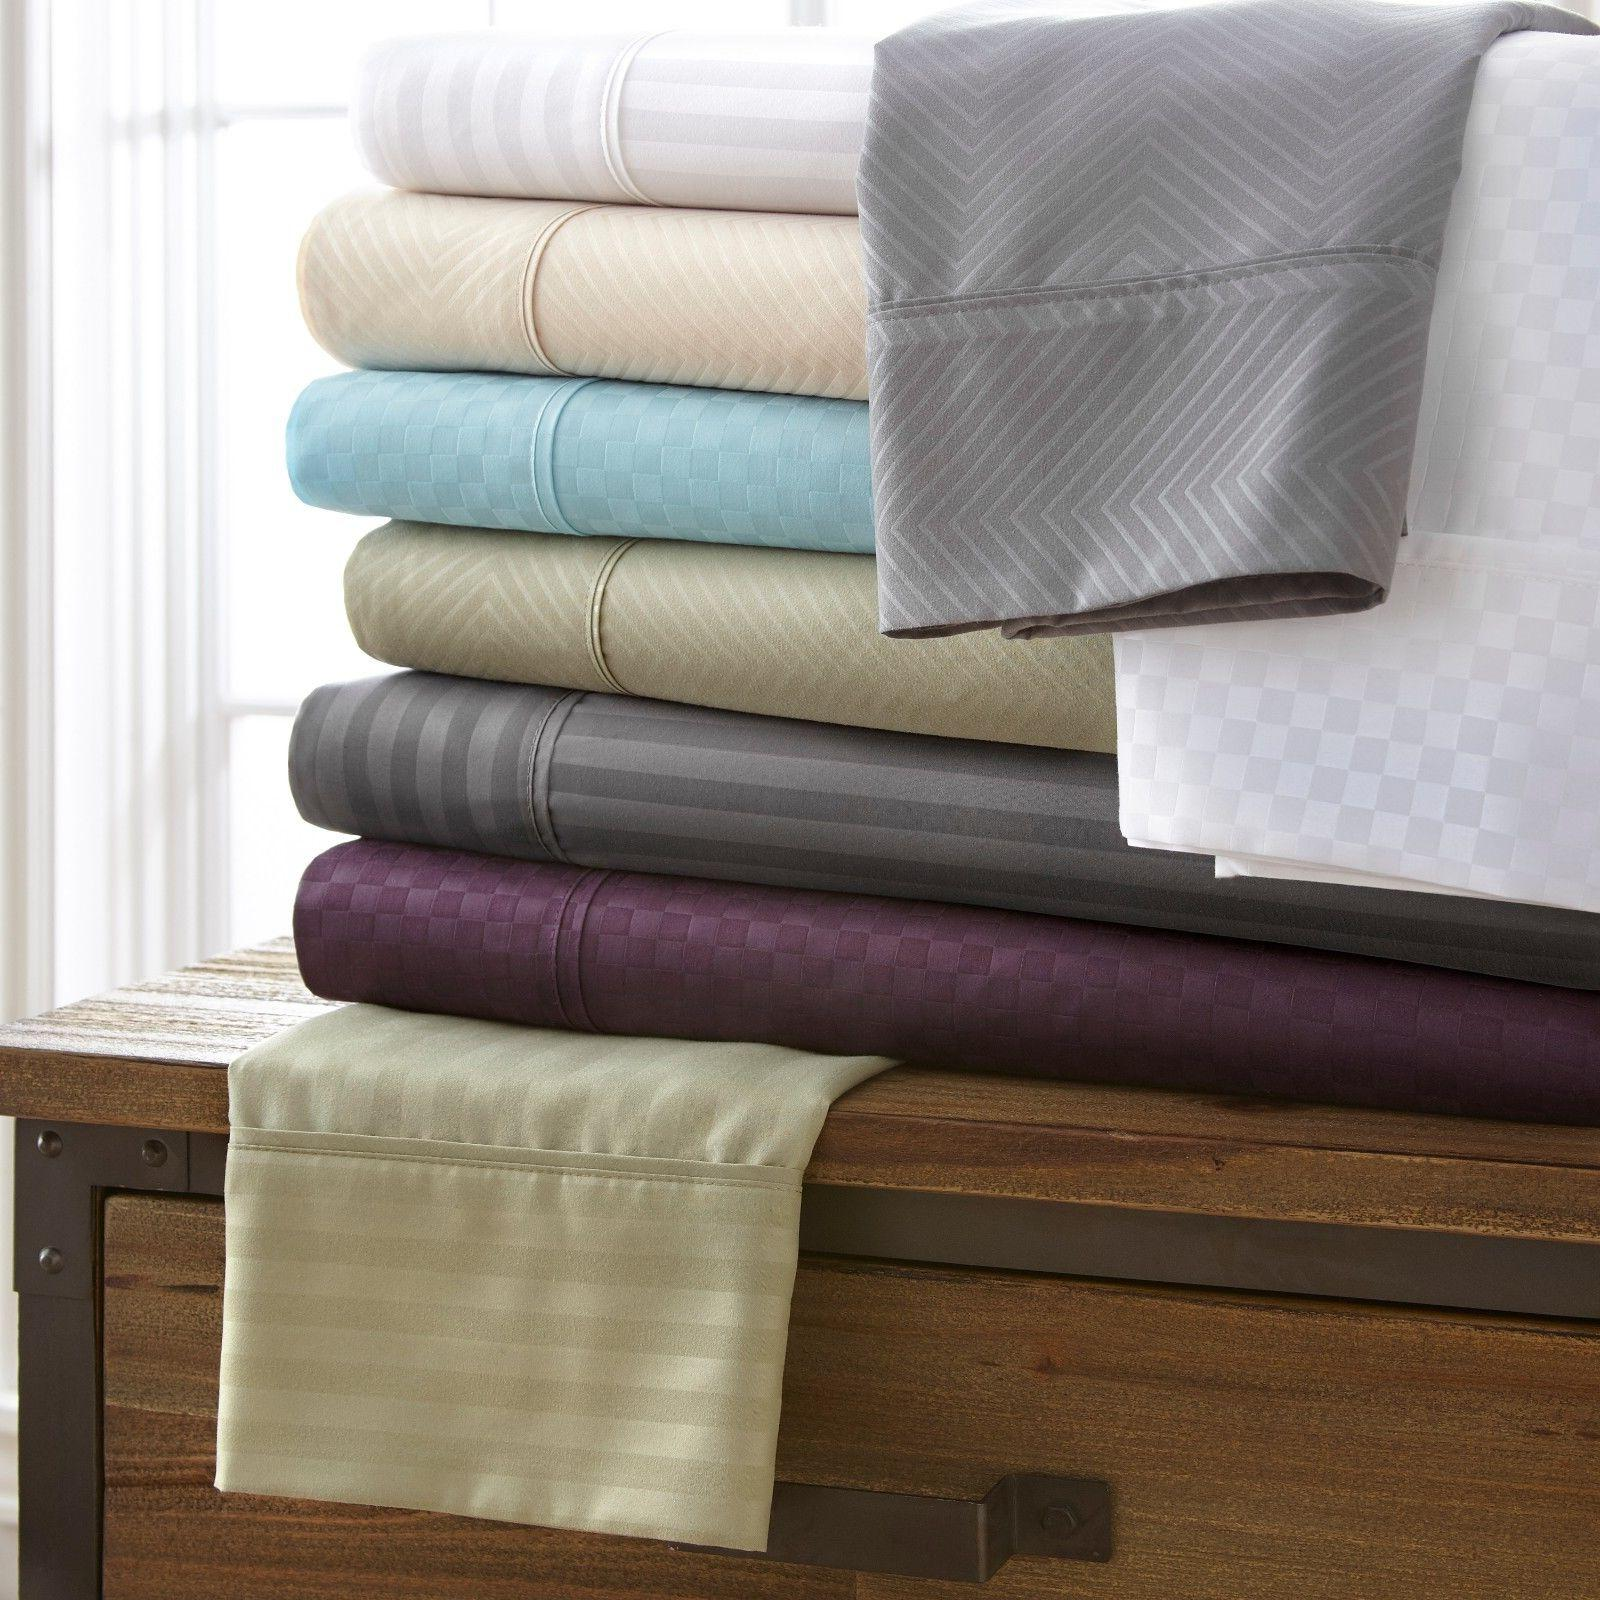 Egyptian Comfort Hotel Quality 4-Piece Bed Sheet Sets - 4 Lu